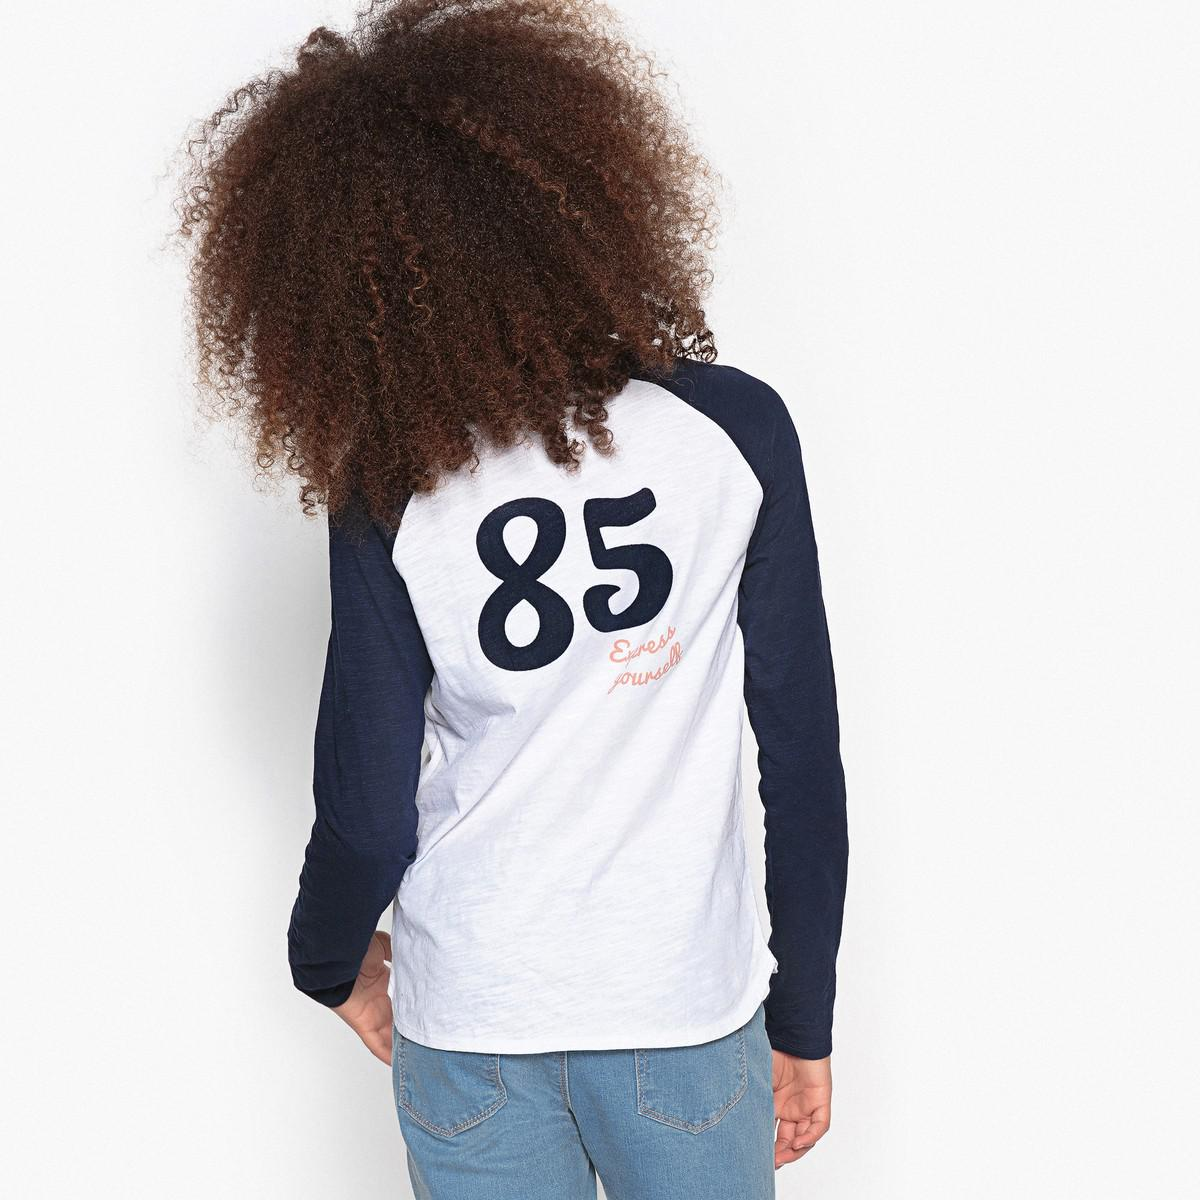 Lyst la redoute t shirt with 39 85 39 print on the back 10 for Bleach nice vibe shirt